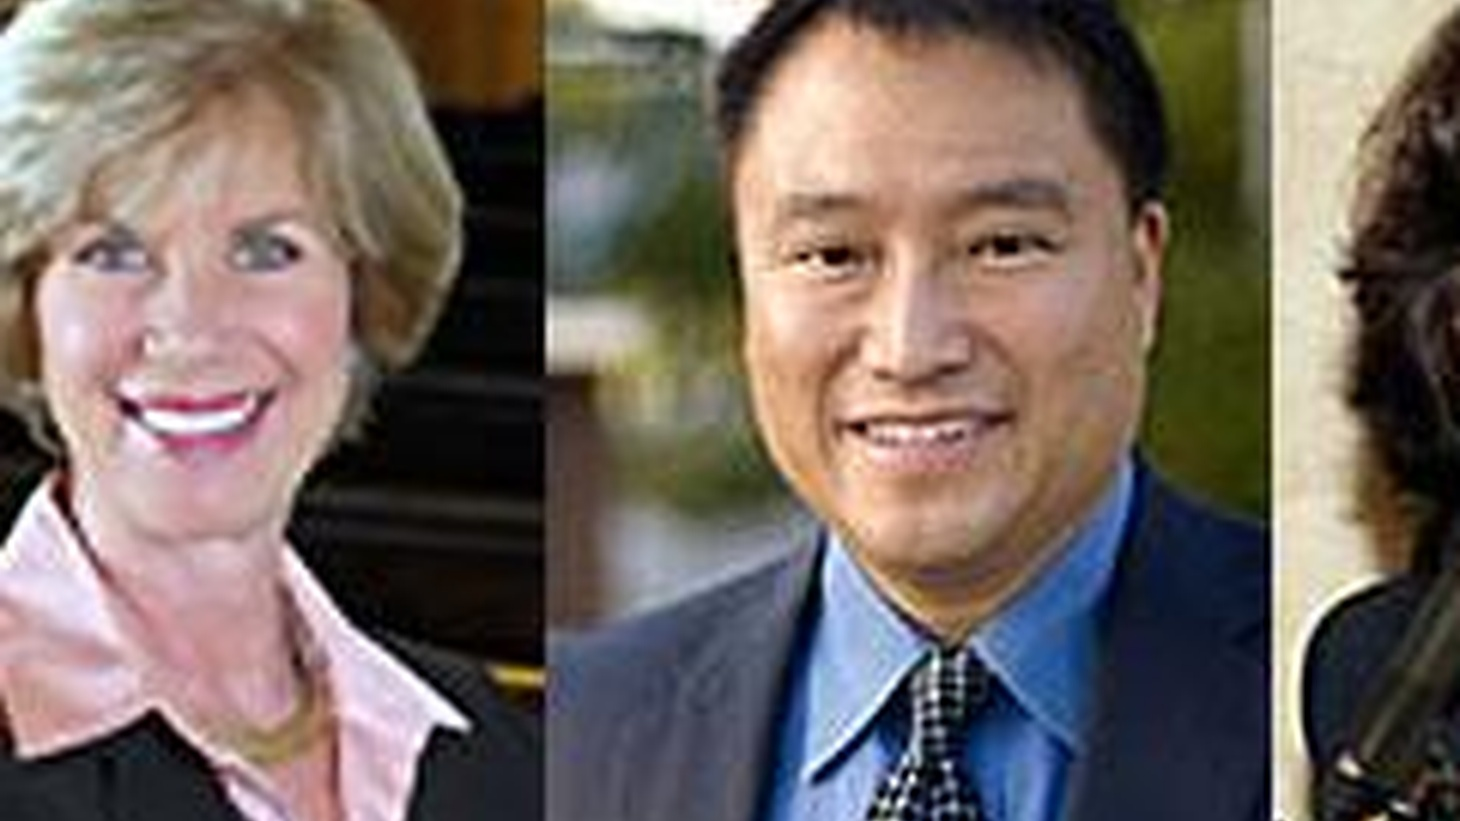 On Tuesday voters will get a chance replace Democrat Jane Harman, who resigned from her Congressional seat. We talk with four leaders on a ballot that includes 16 candidates.